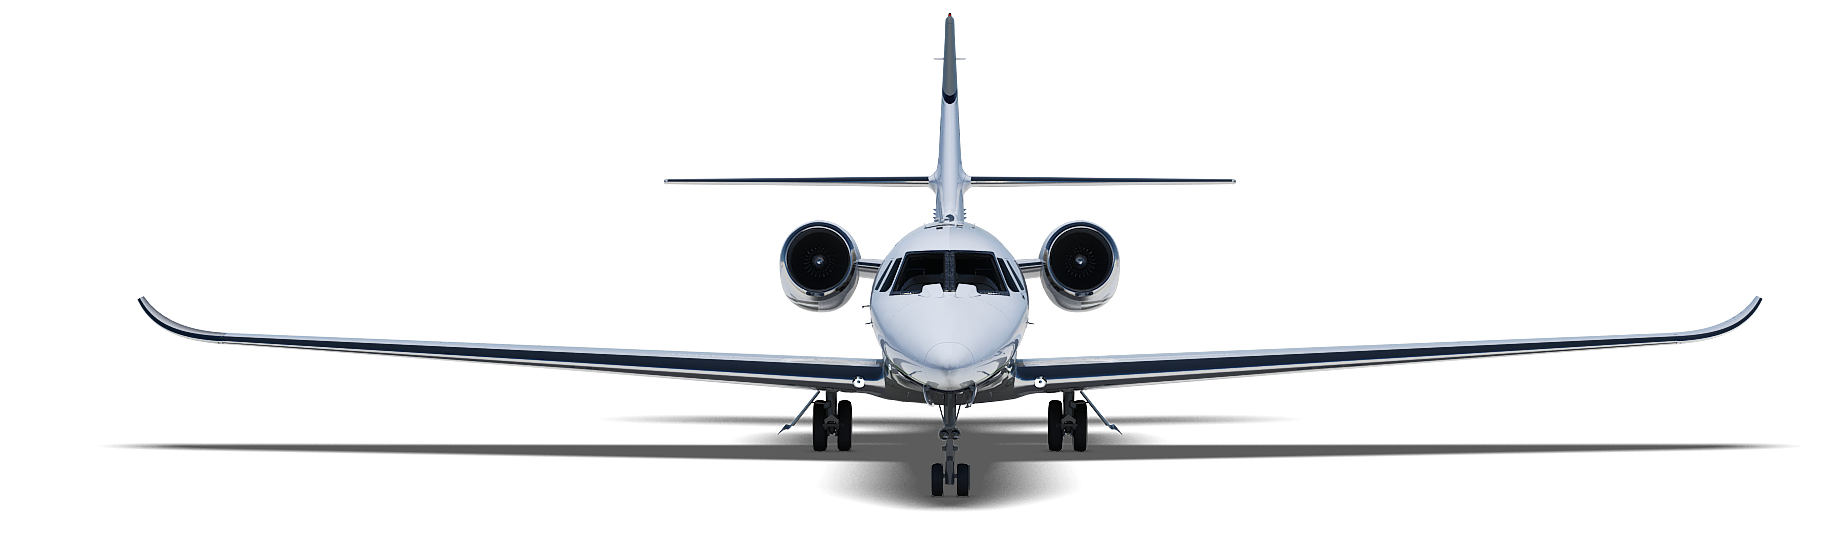 1828x551 Private Jet, Fly Comfortable With Saveene